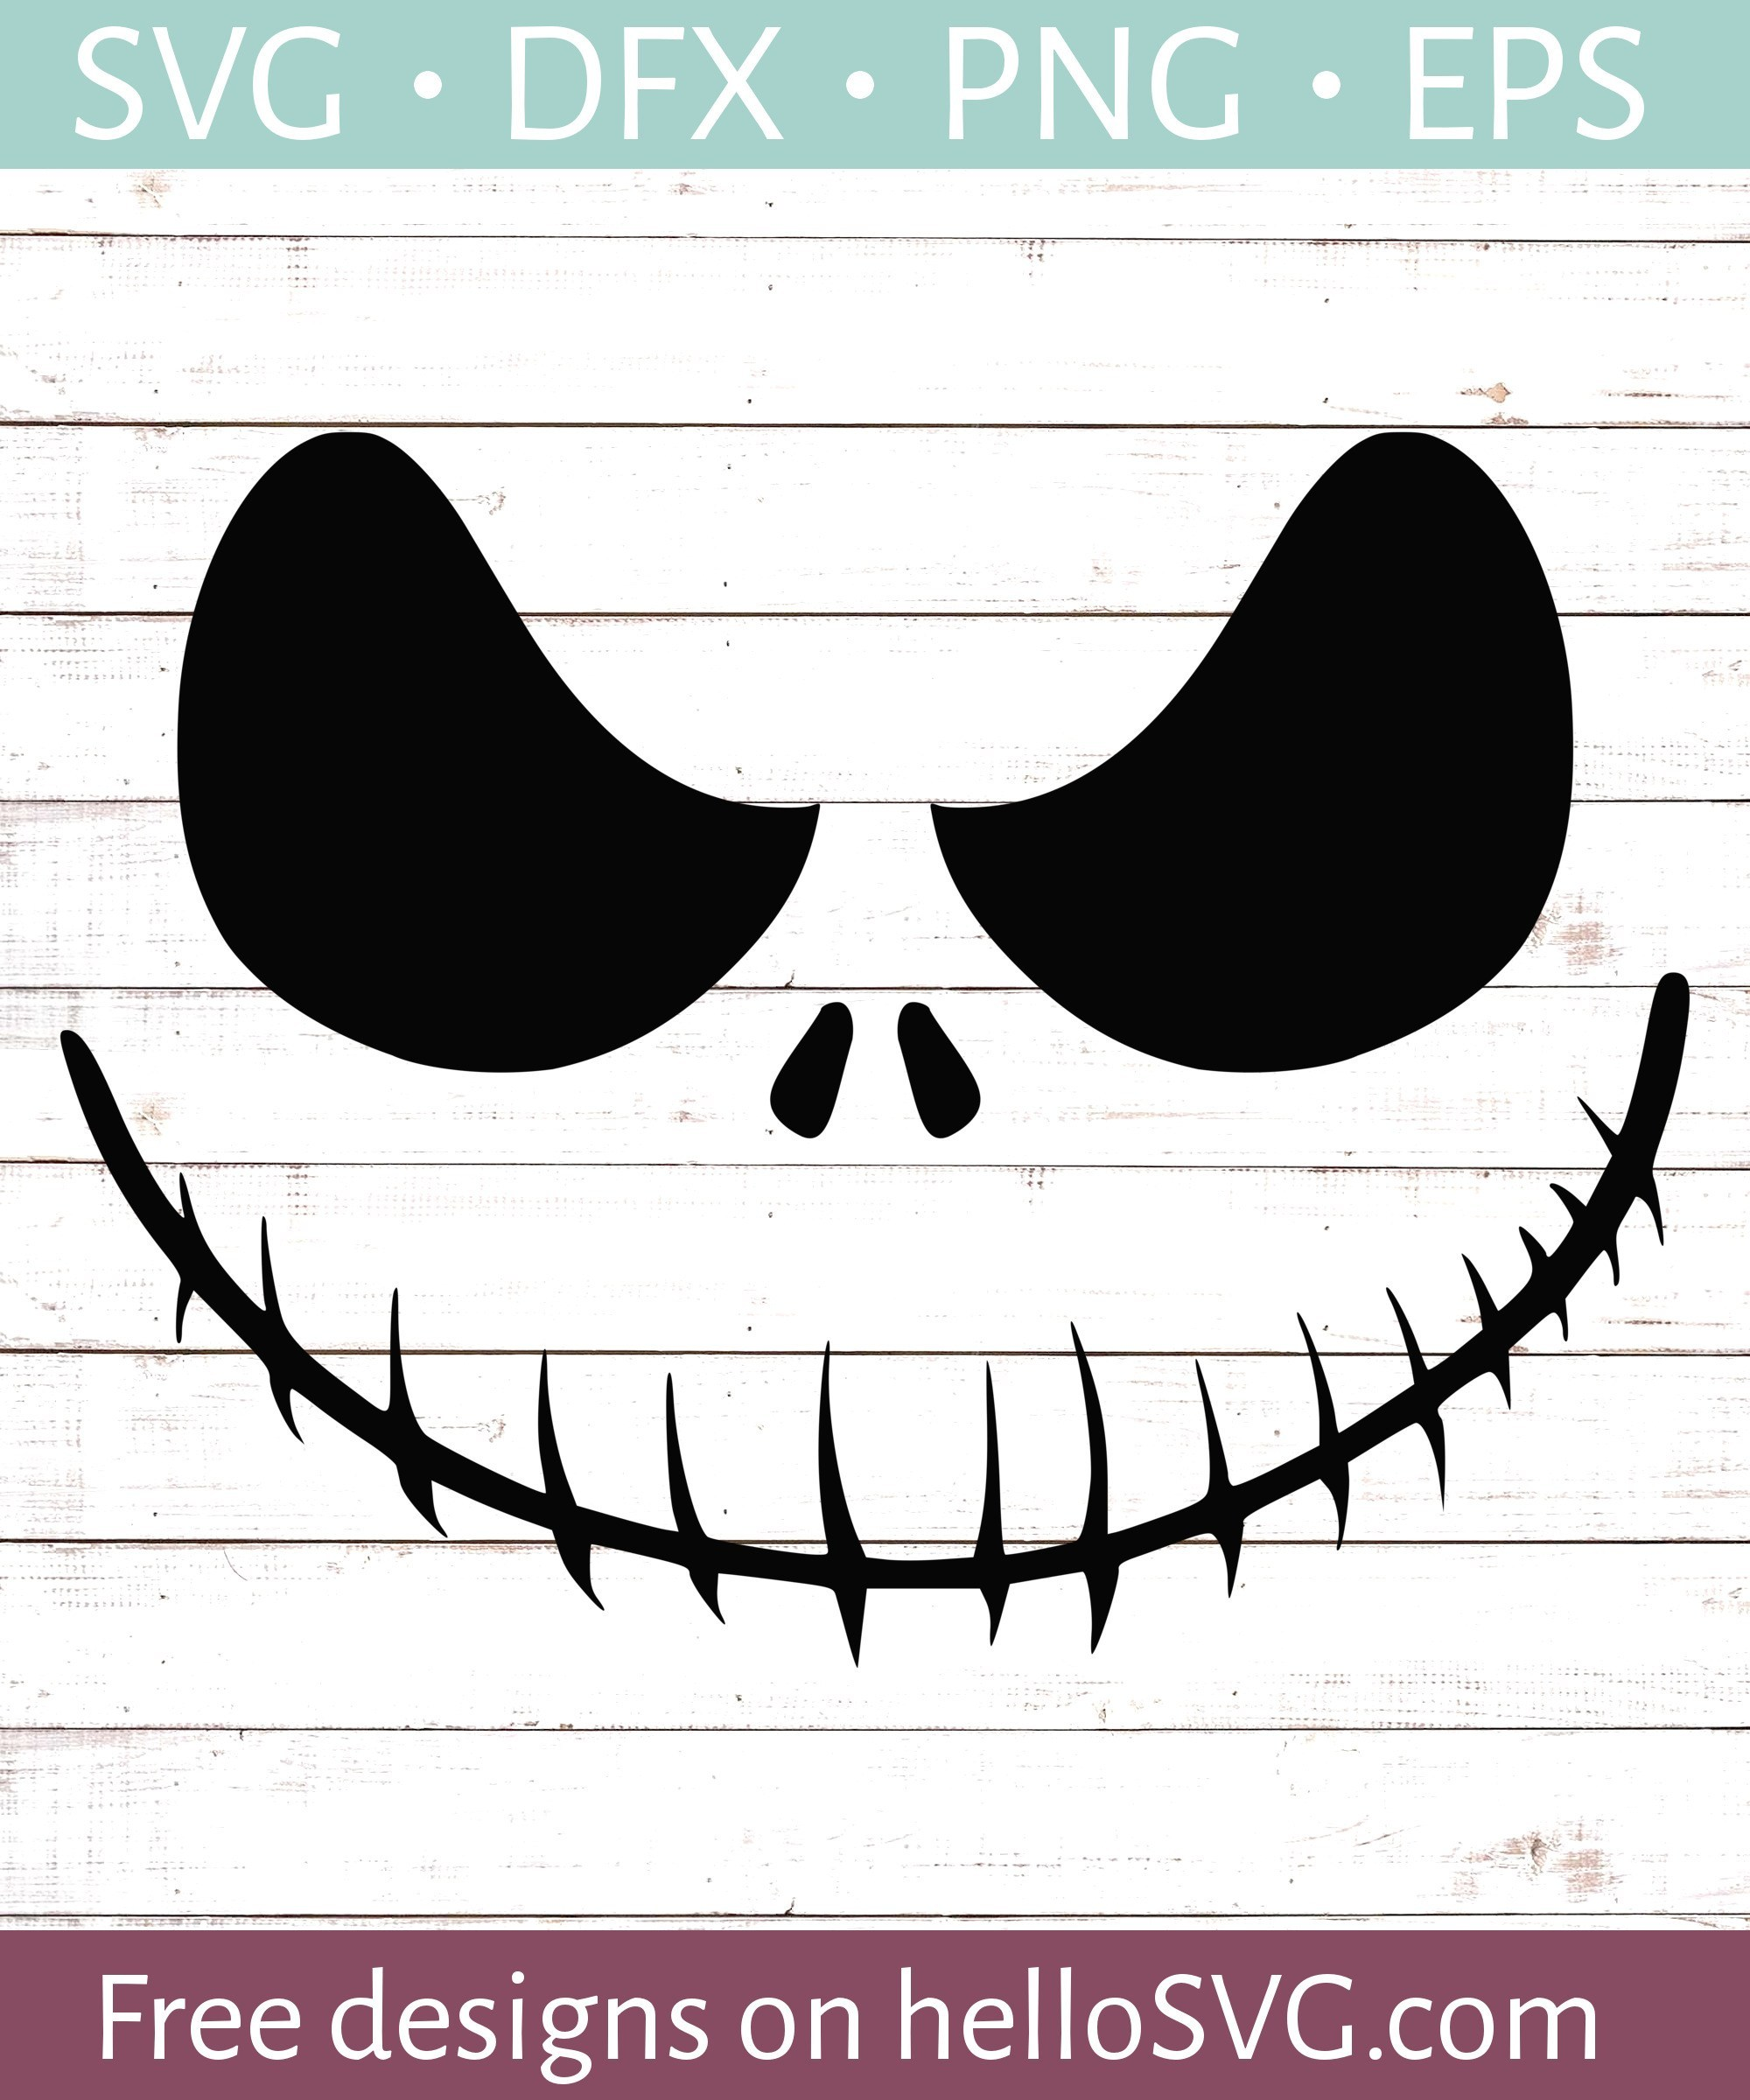 nightmare before christmas svg free #513, Download drawings